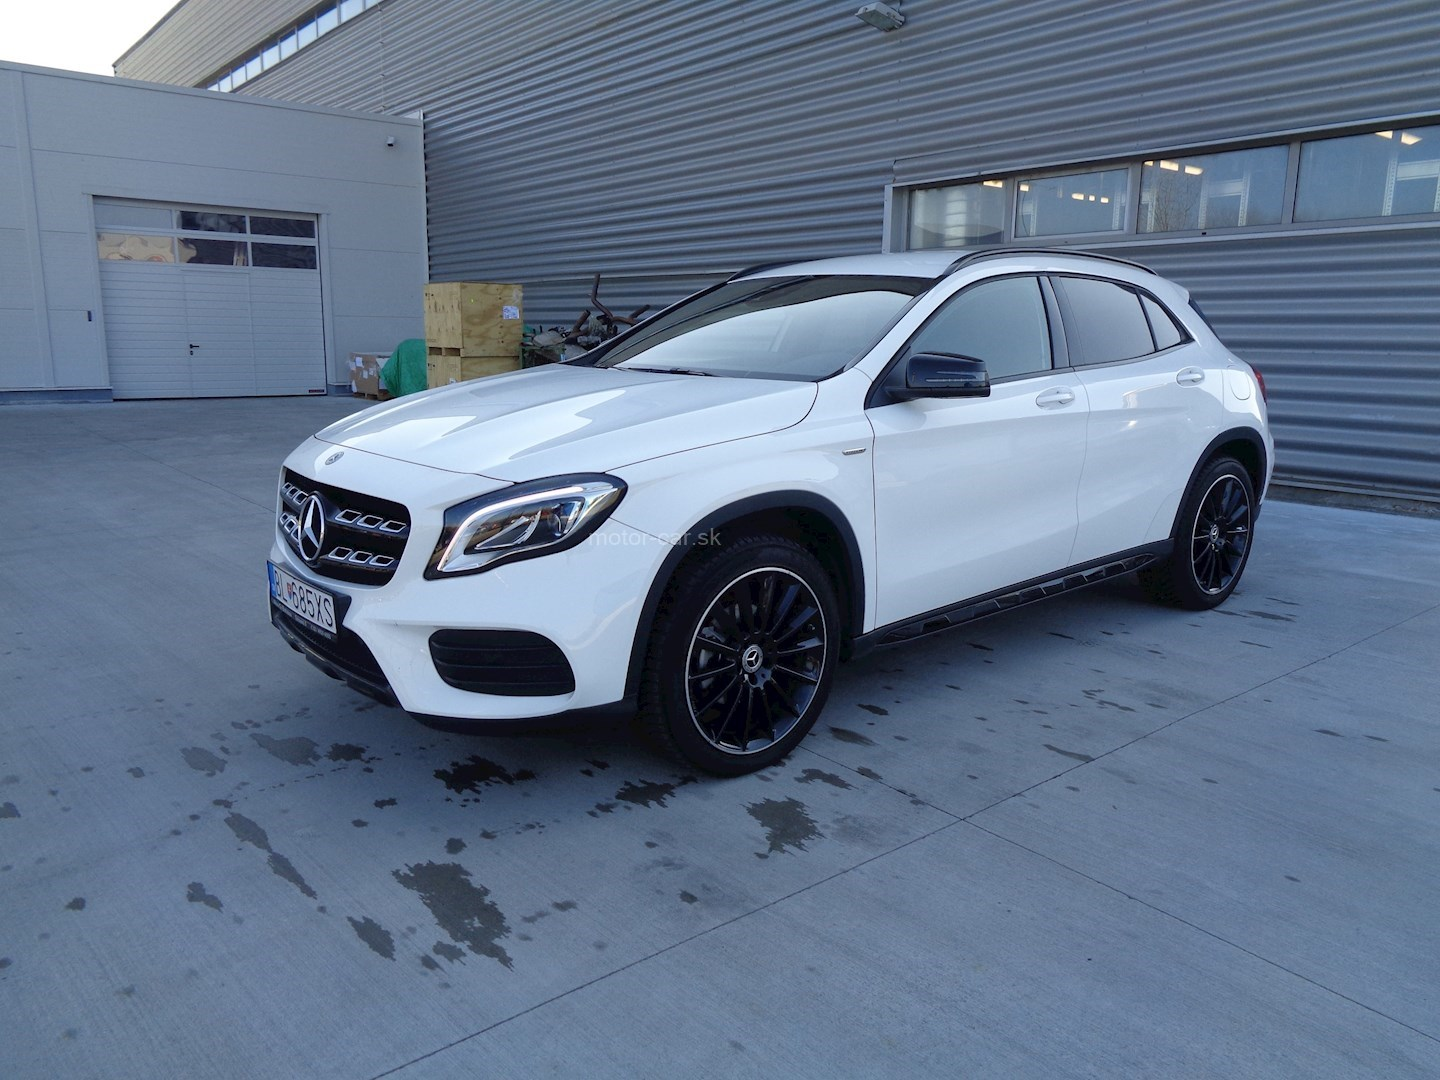 mercedes-benz gla 200 d 4matic